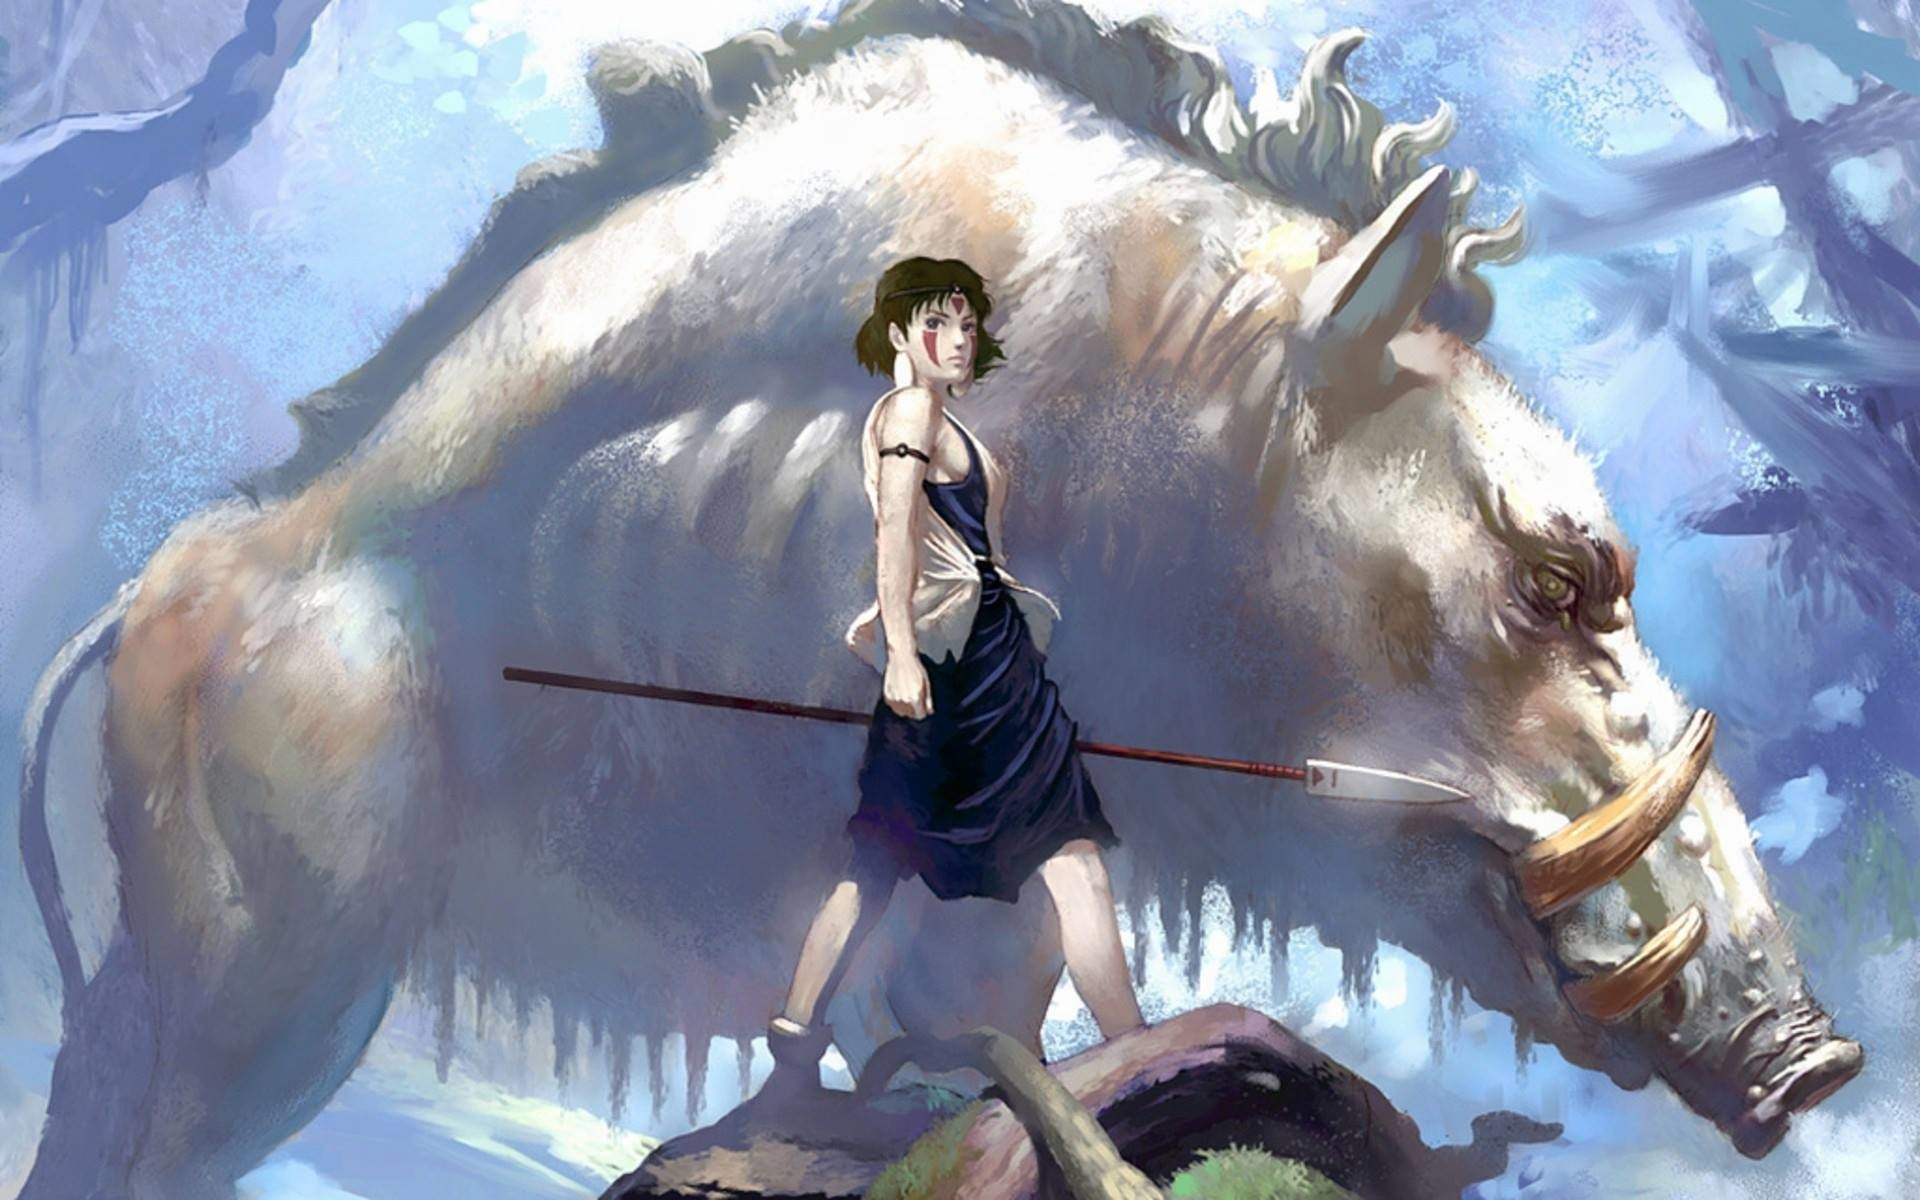 A Princess Mononoke Redesign I Could Get Behind | Workshop, Search .